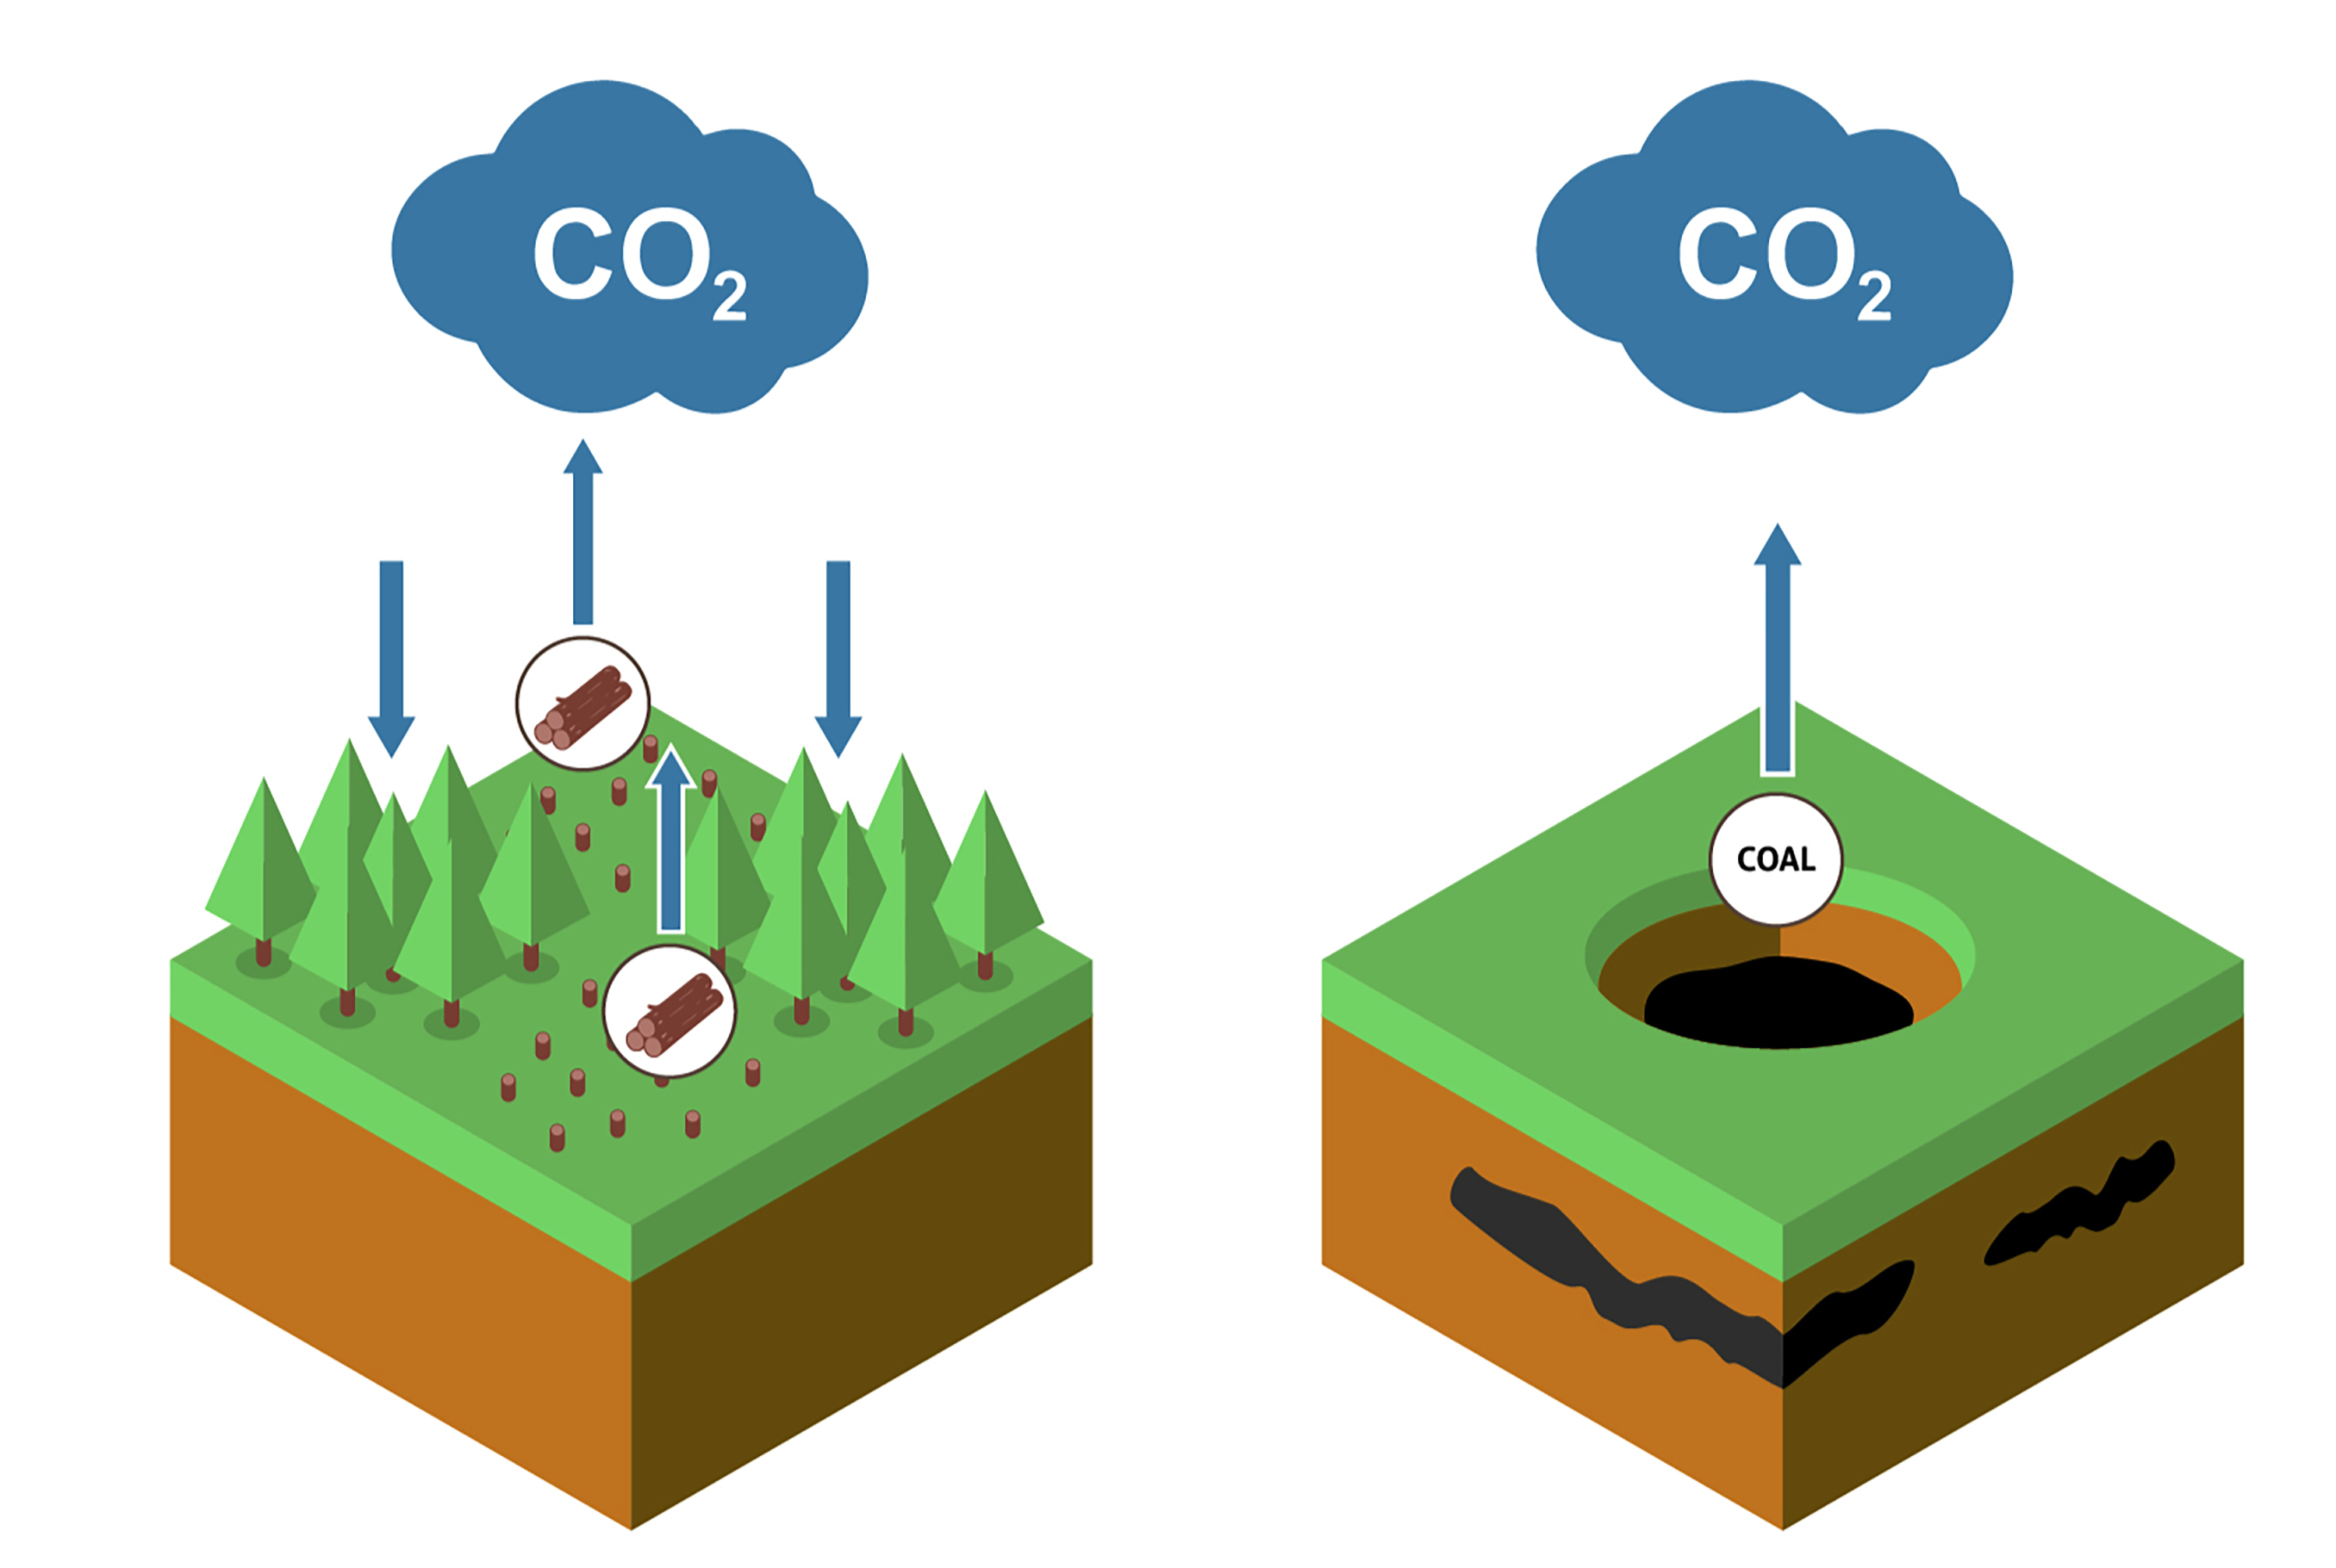 """CO2"" pointing at segment of earth and trees. Illustration."